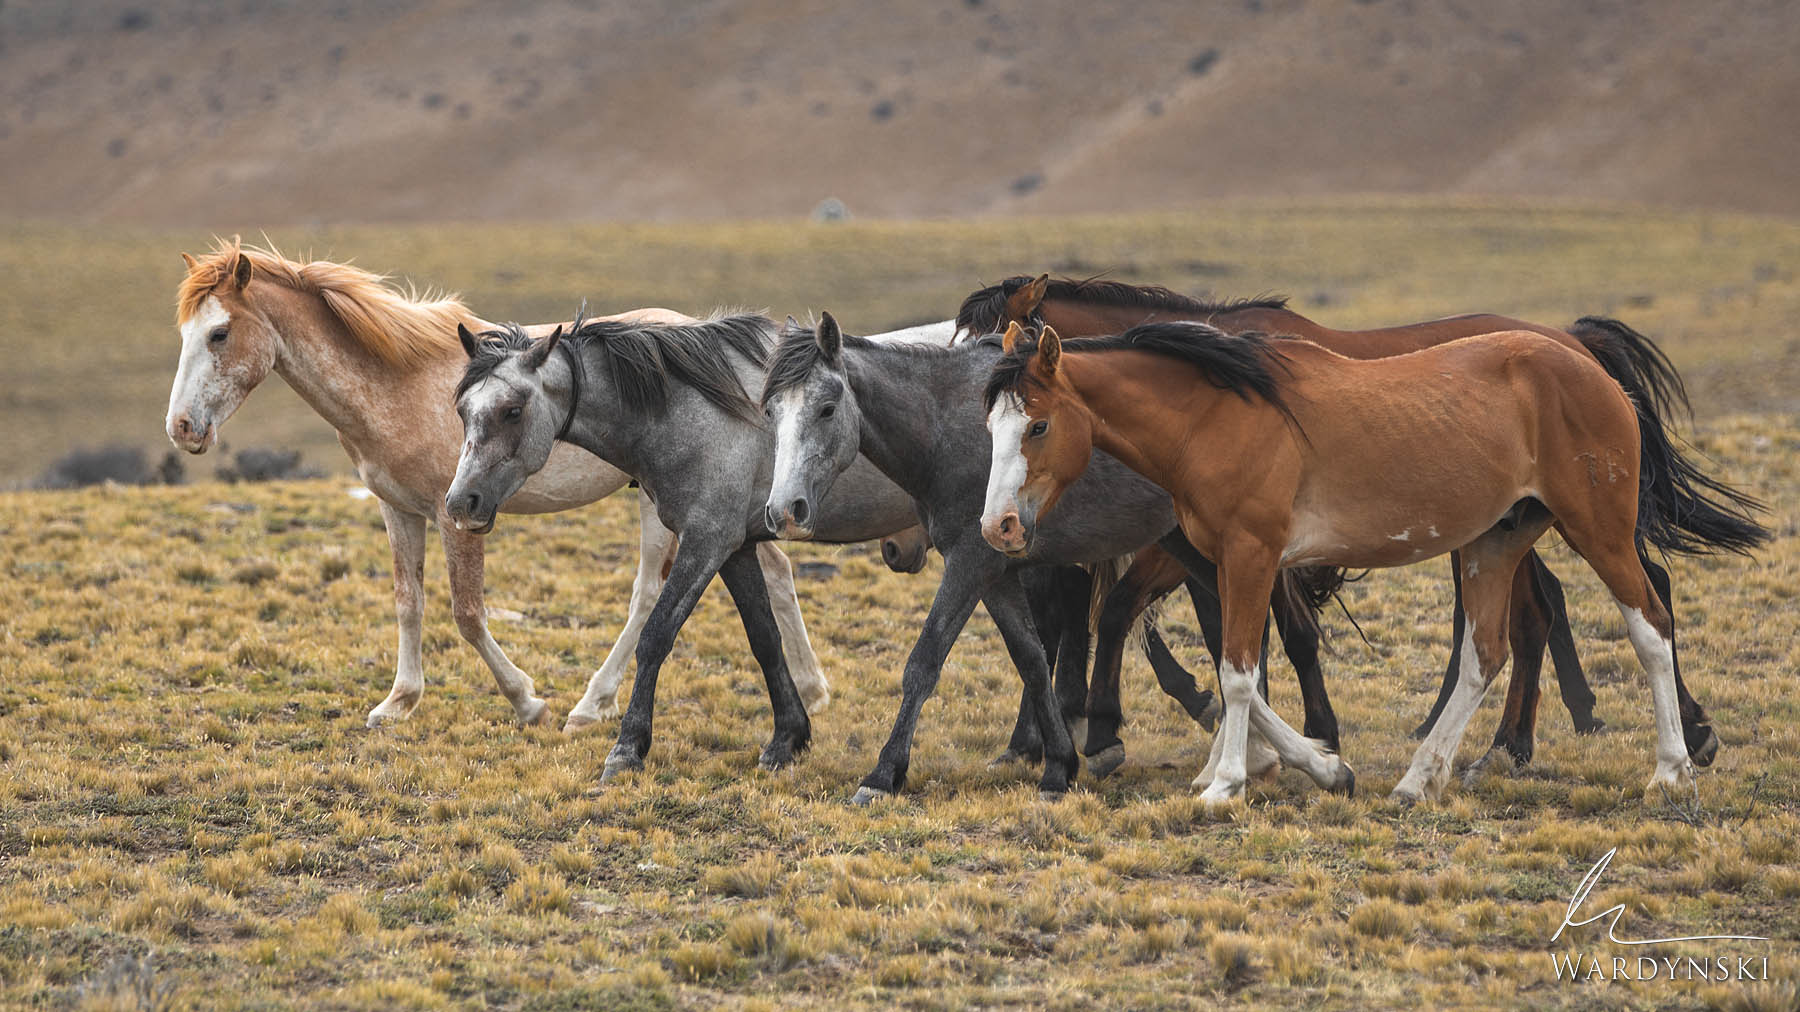 Fine Art Print | Limited Edition of 35  A group of wild horses march on the open plains of Patagonia near the town of El Calafate...